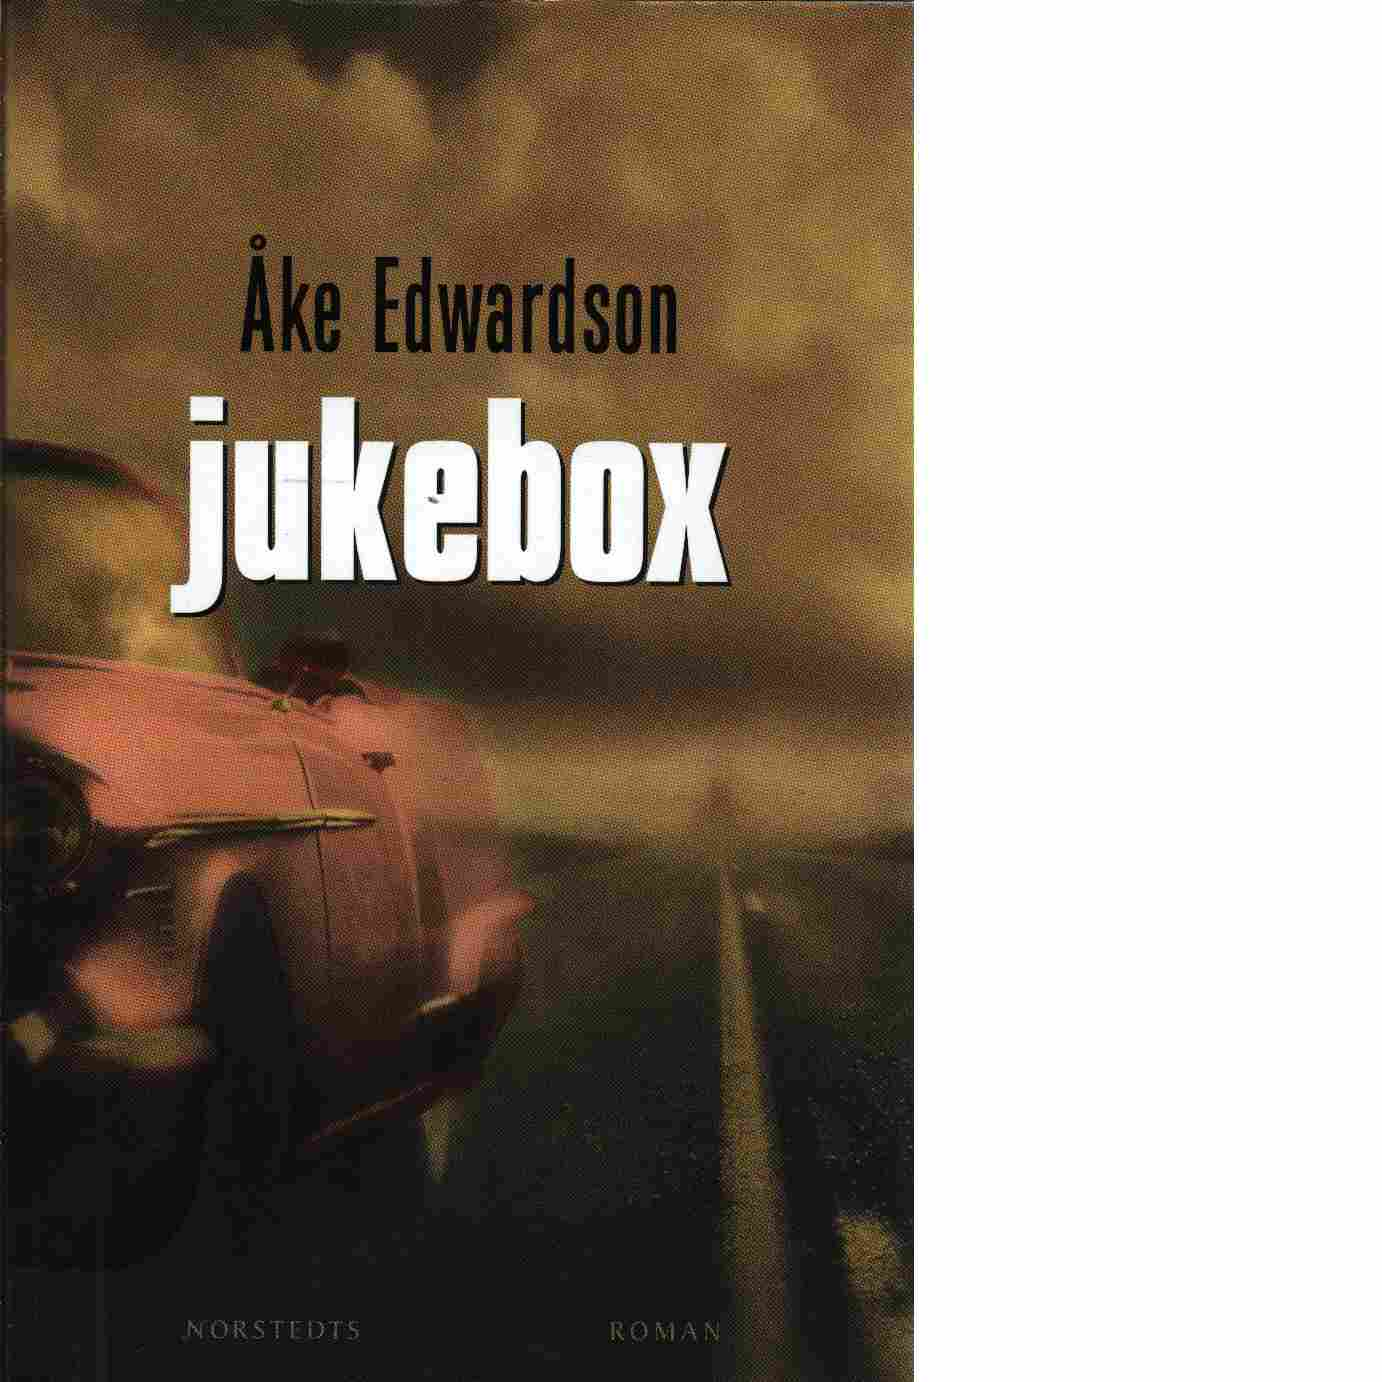 Jukebox - Edwardson, Åke